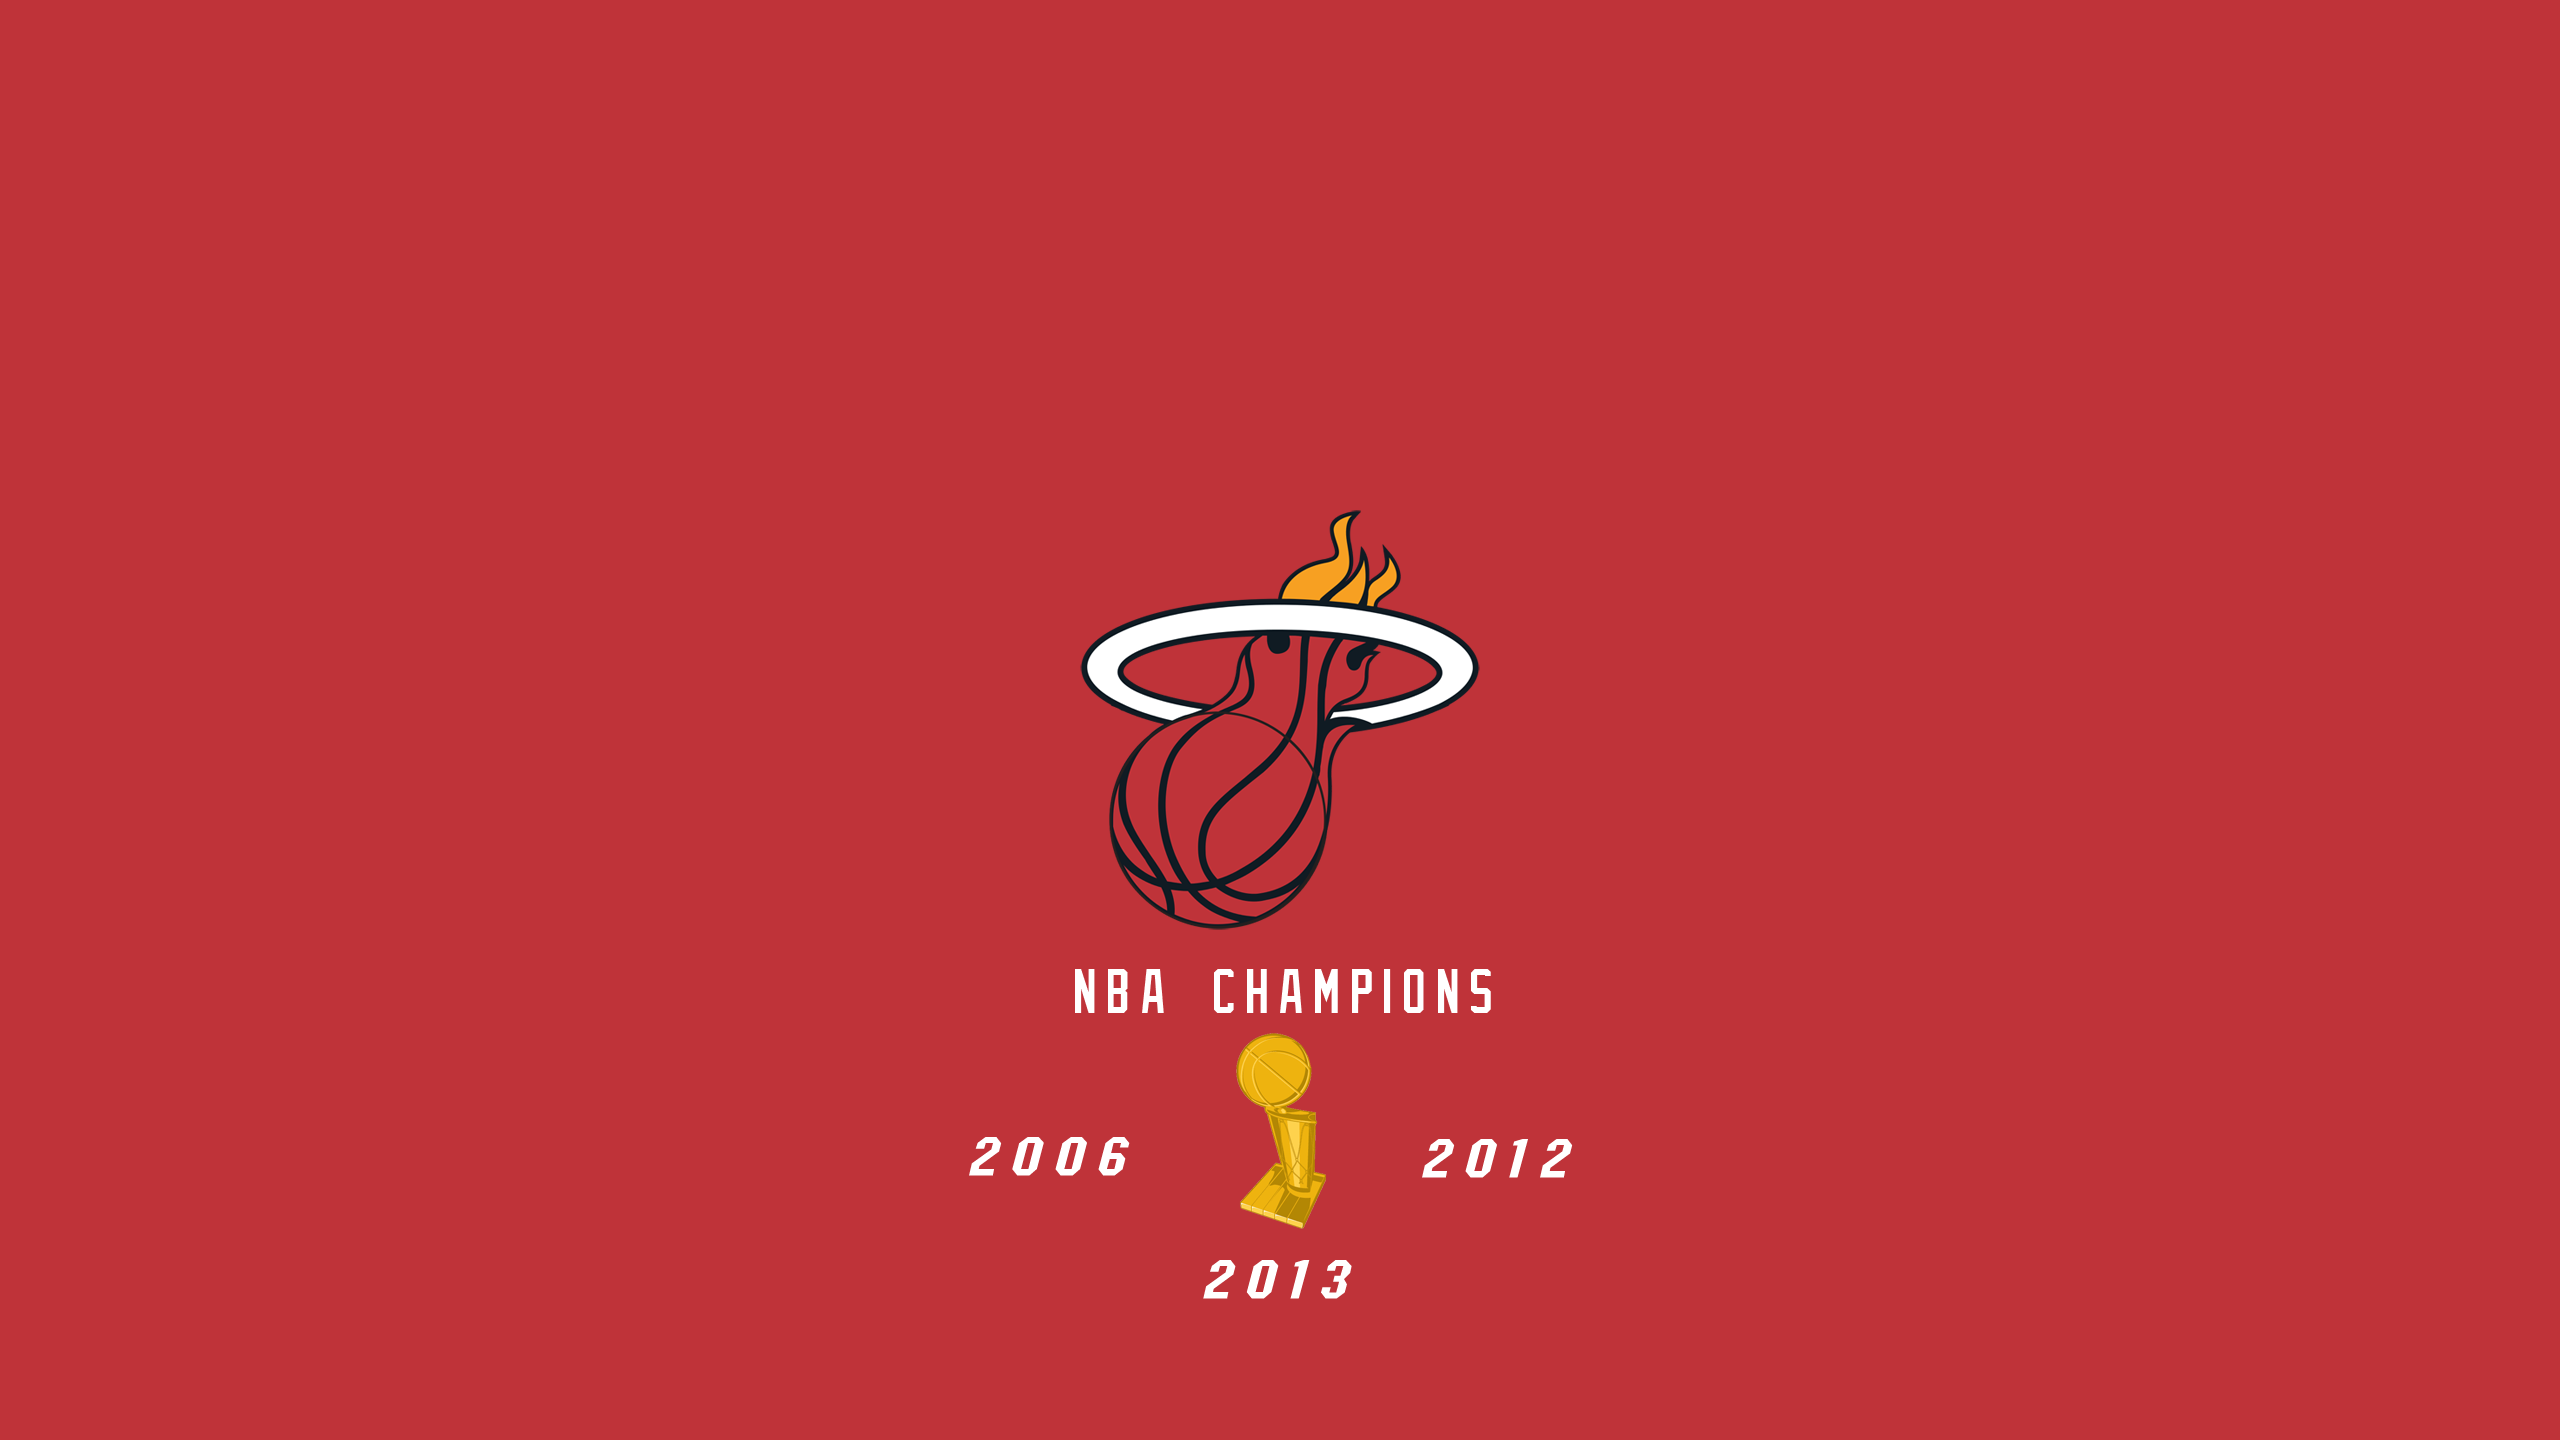 Miami Heat - NBA Champs